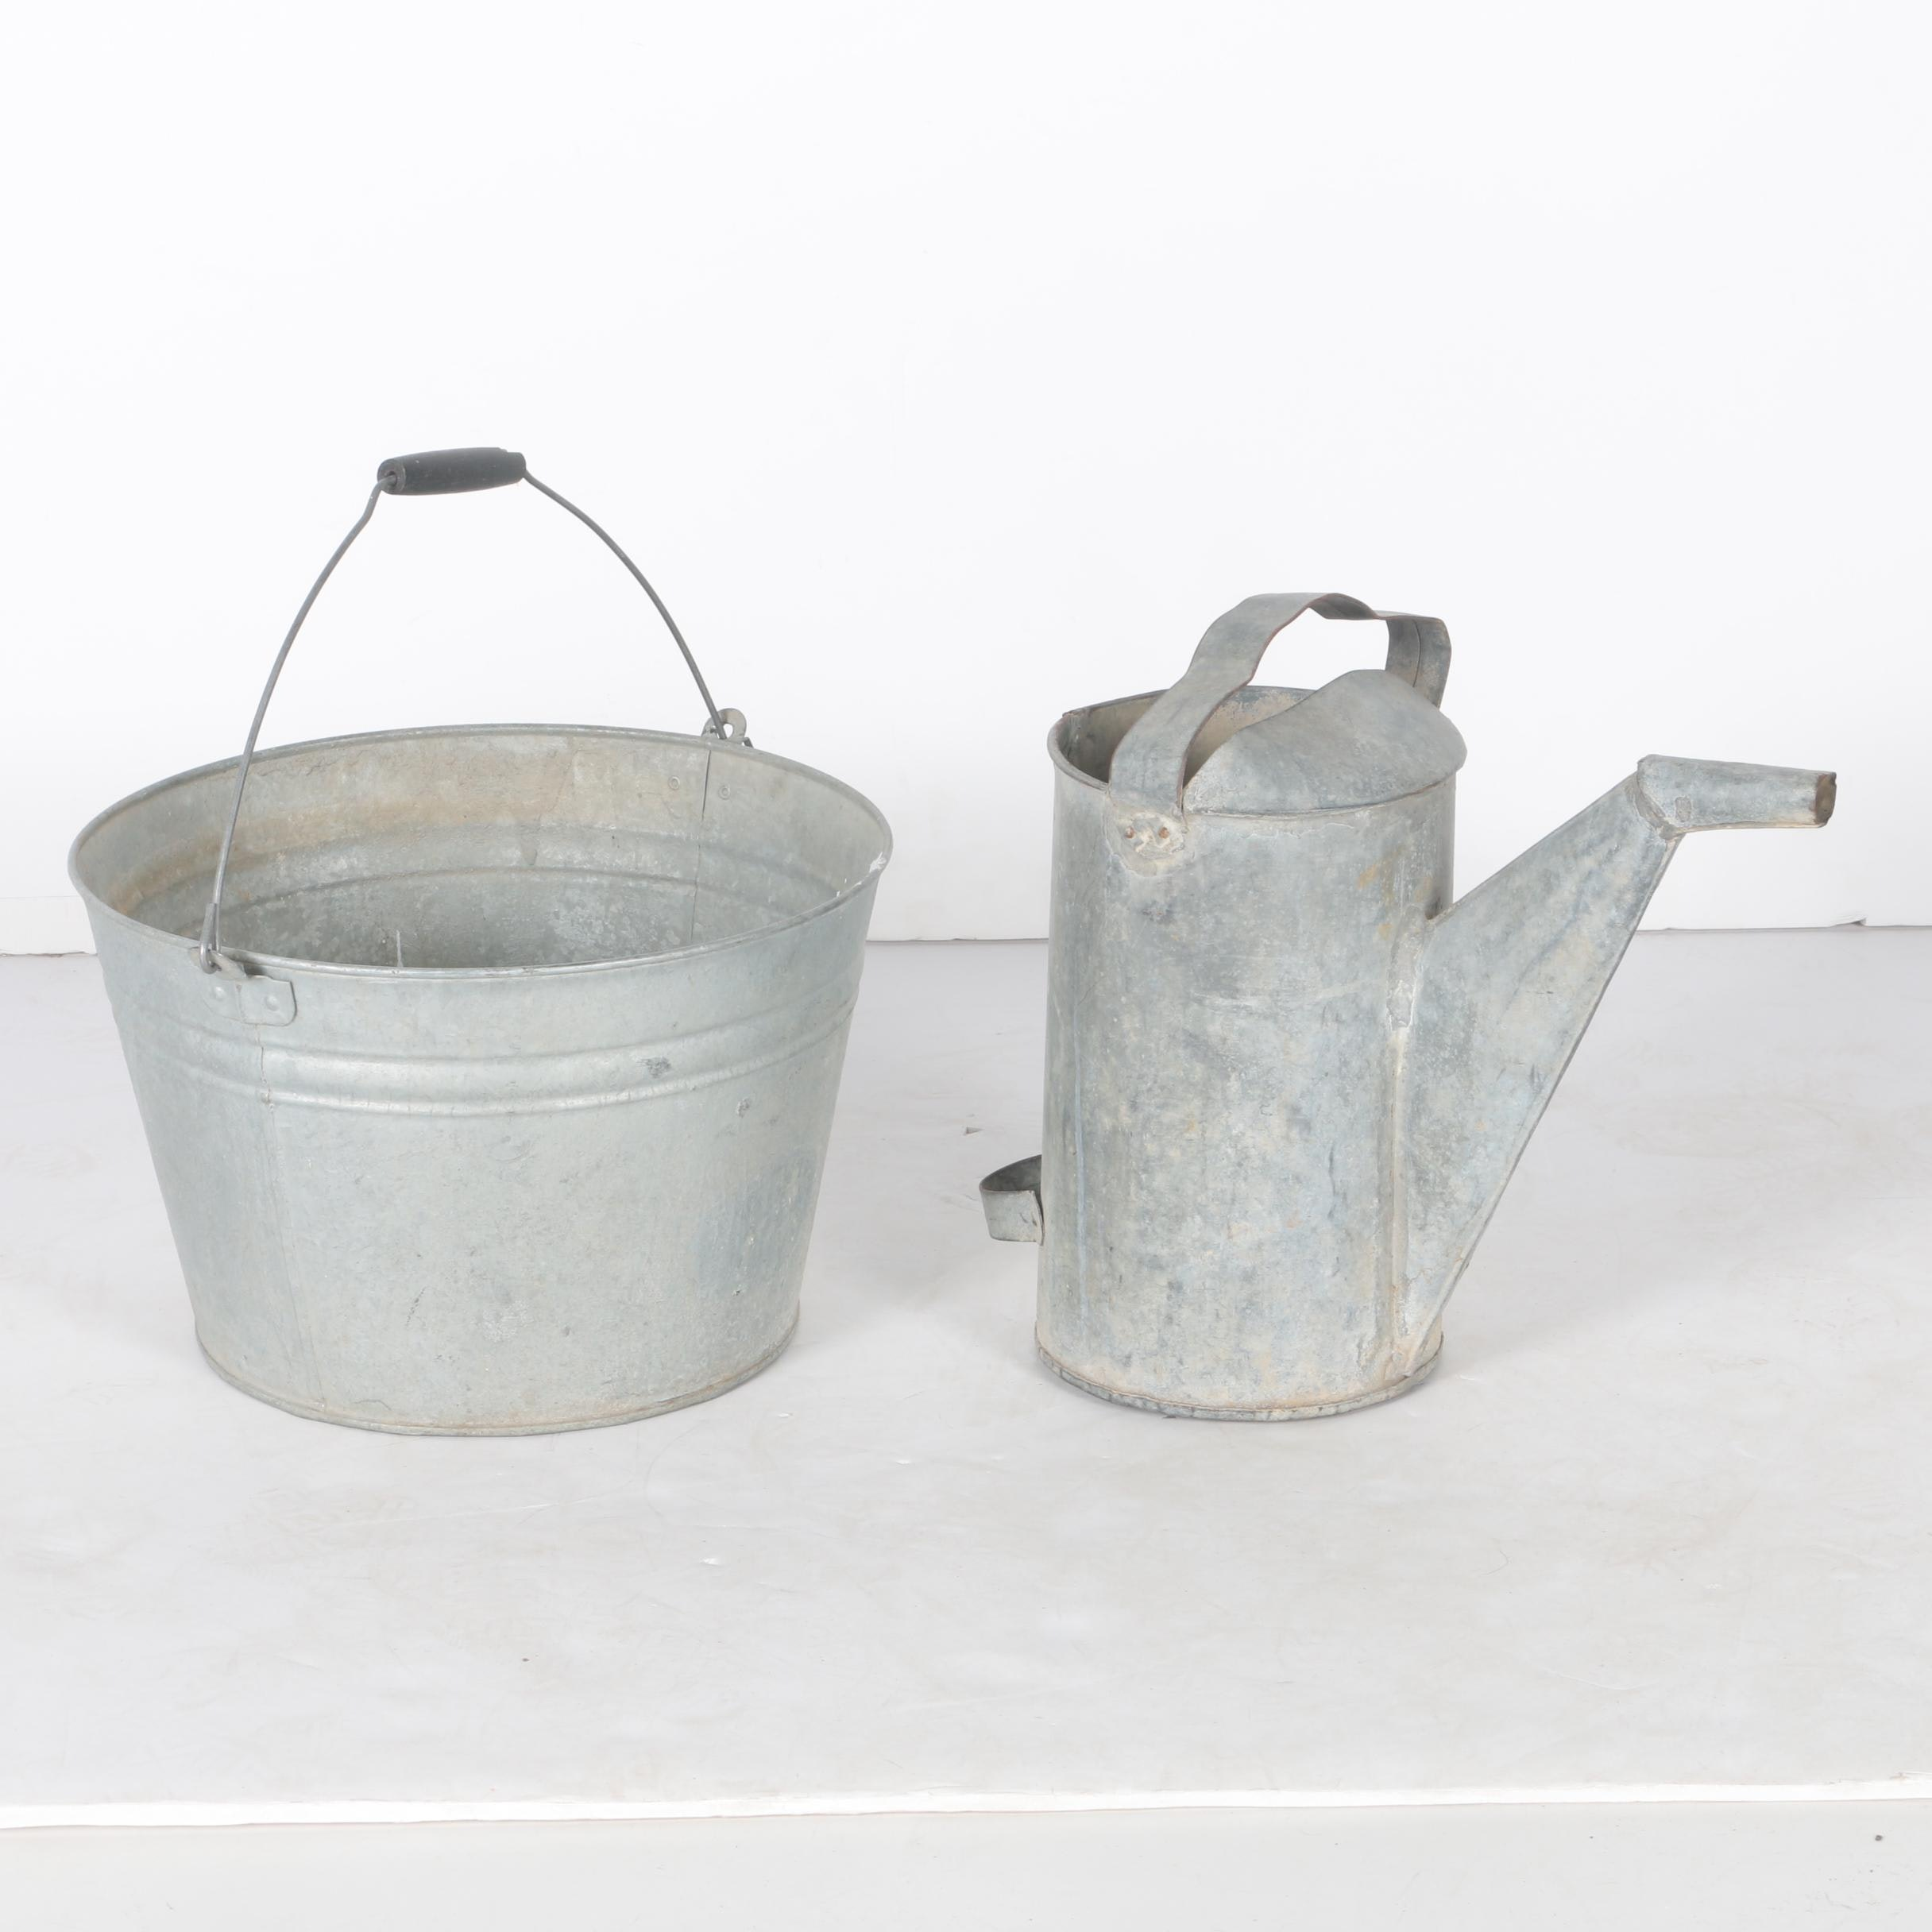 Galvanized Steel Watering Can and Pail